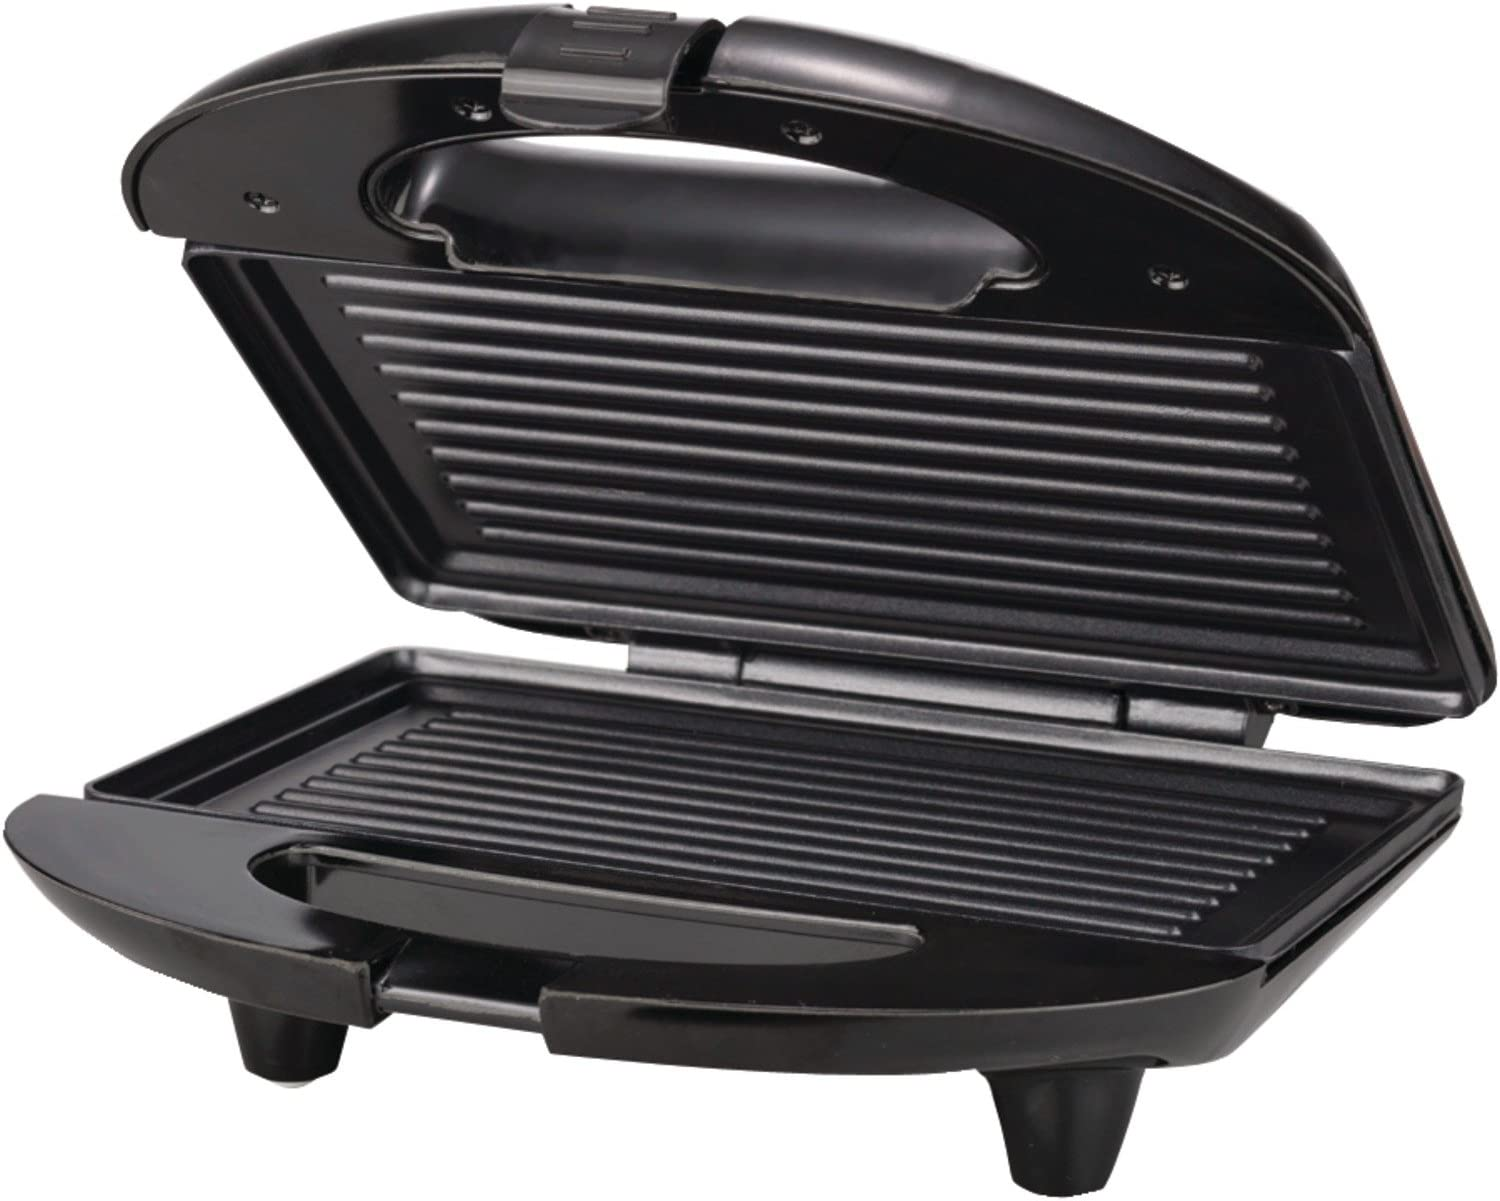 Brentwood TS-246 Panini Press and Sandwich Maker Non-Stick, Black